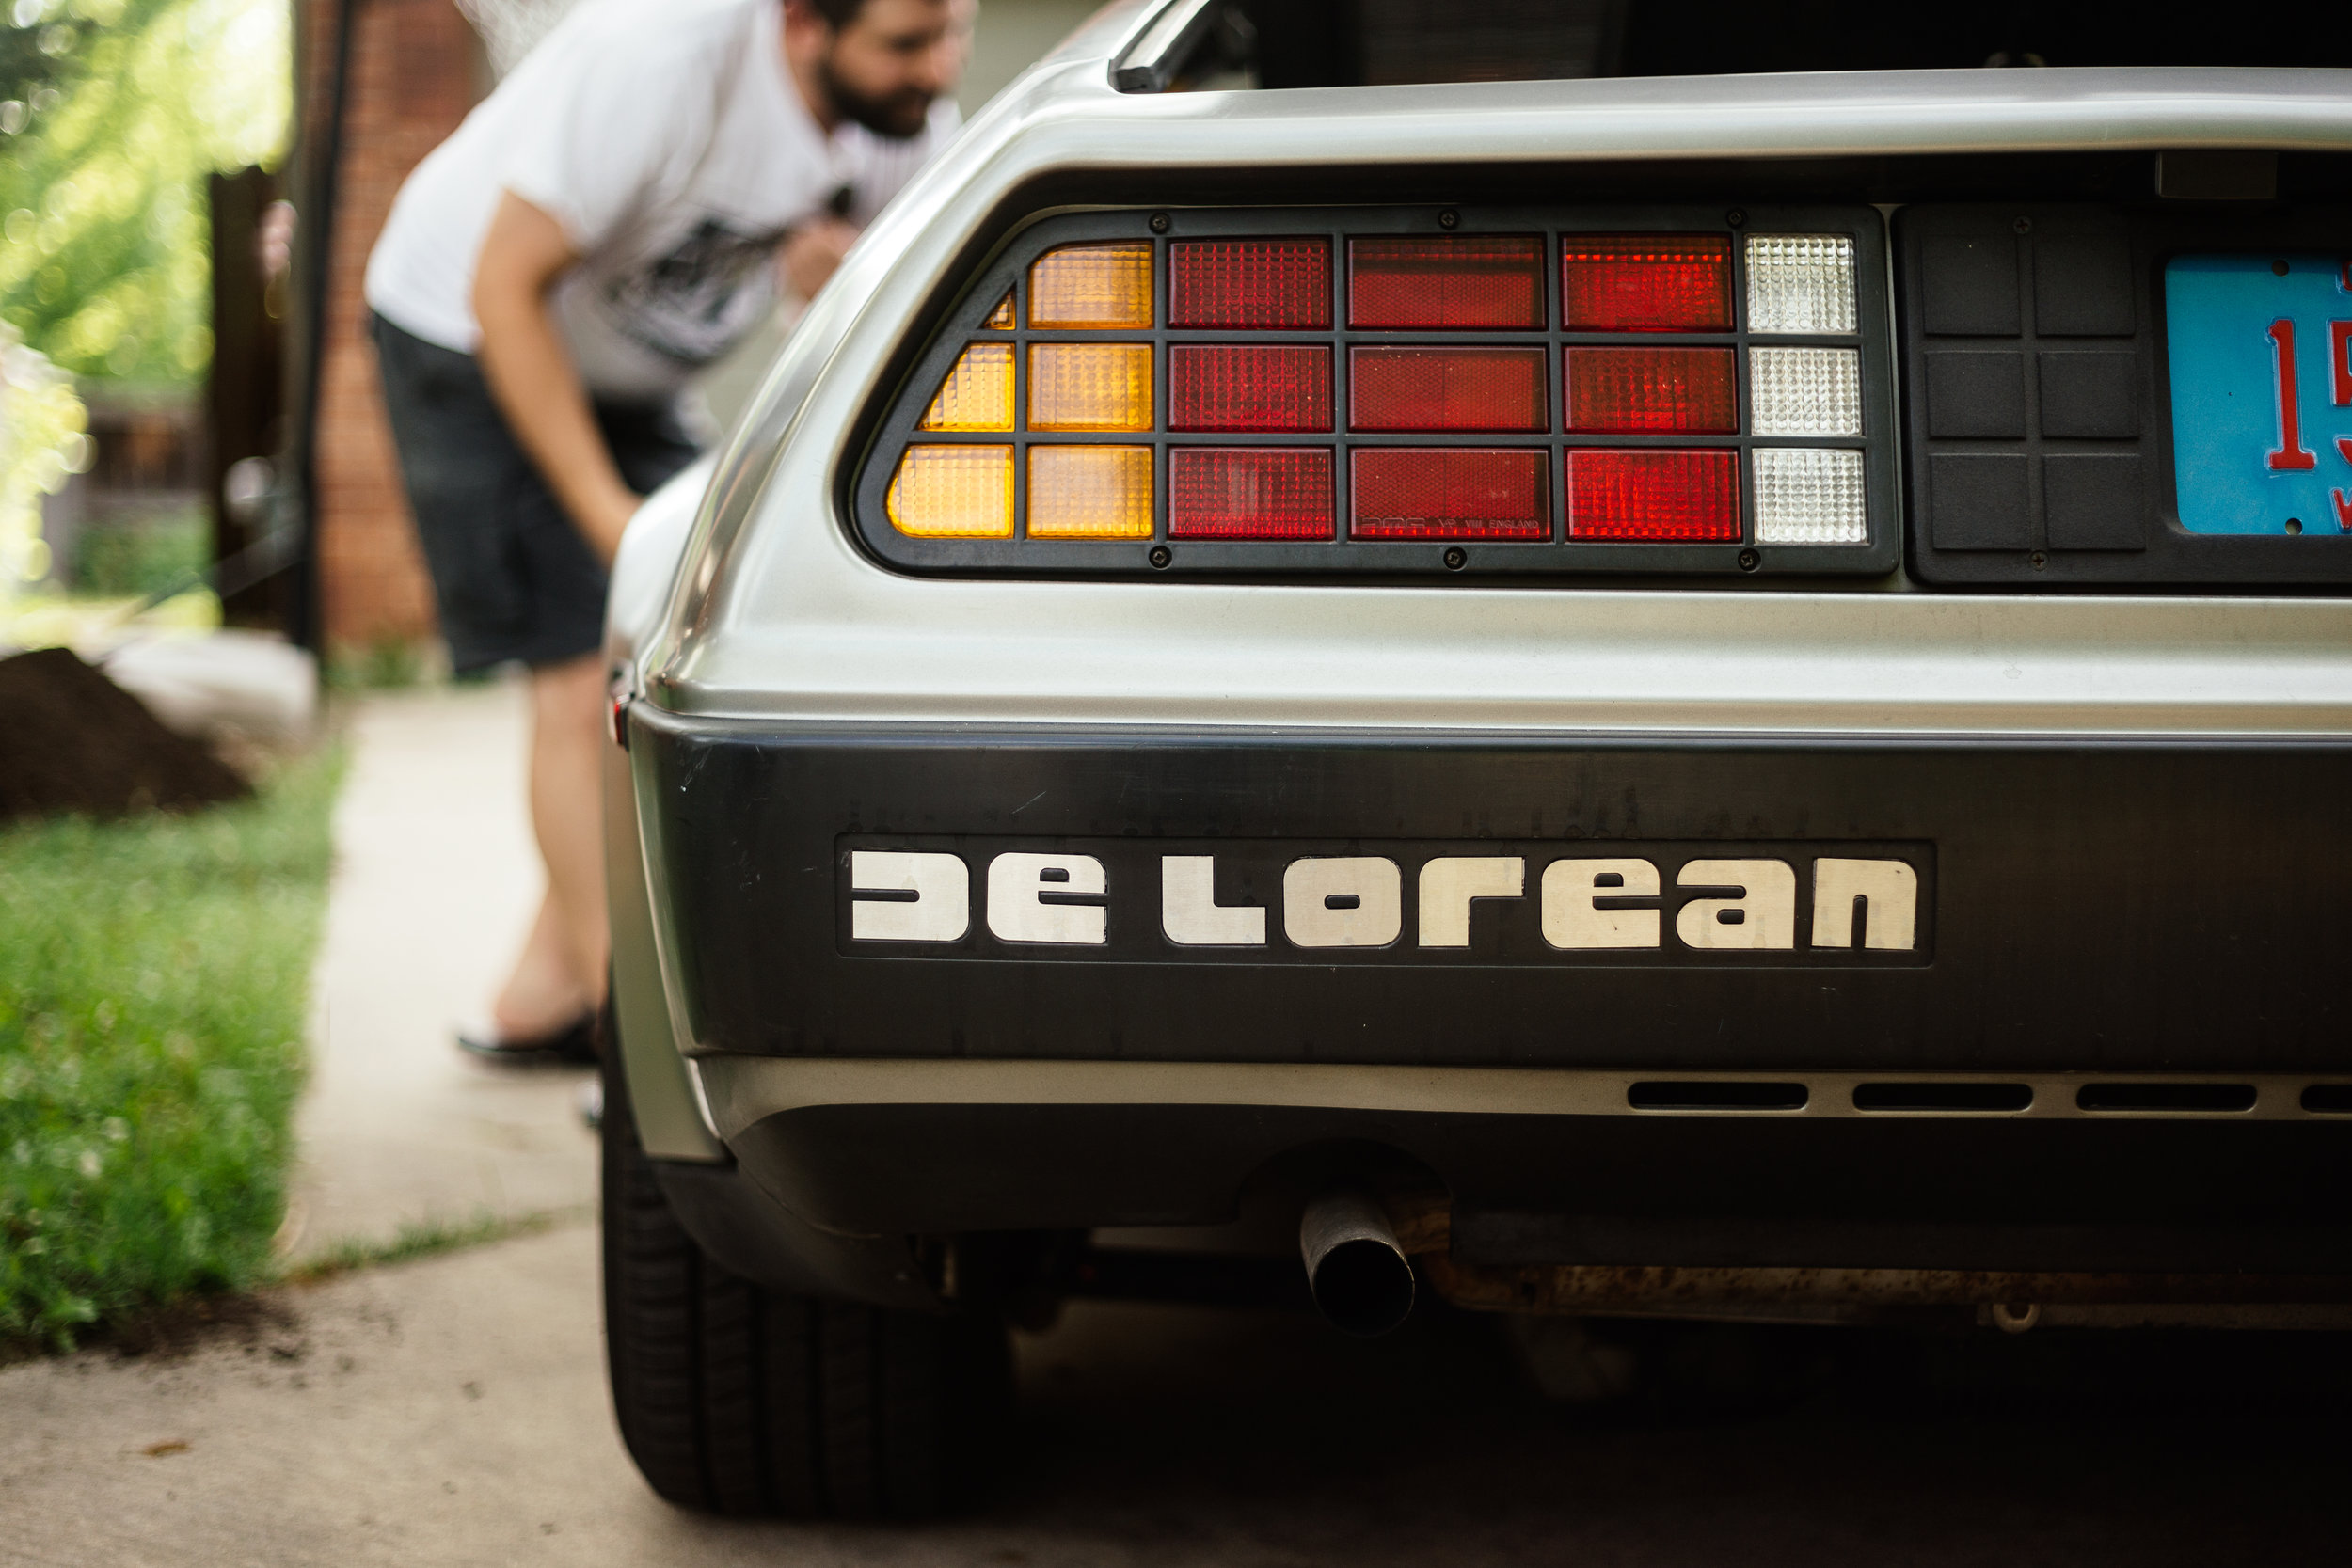 DeLorean - Rear.jpg